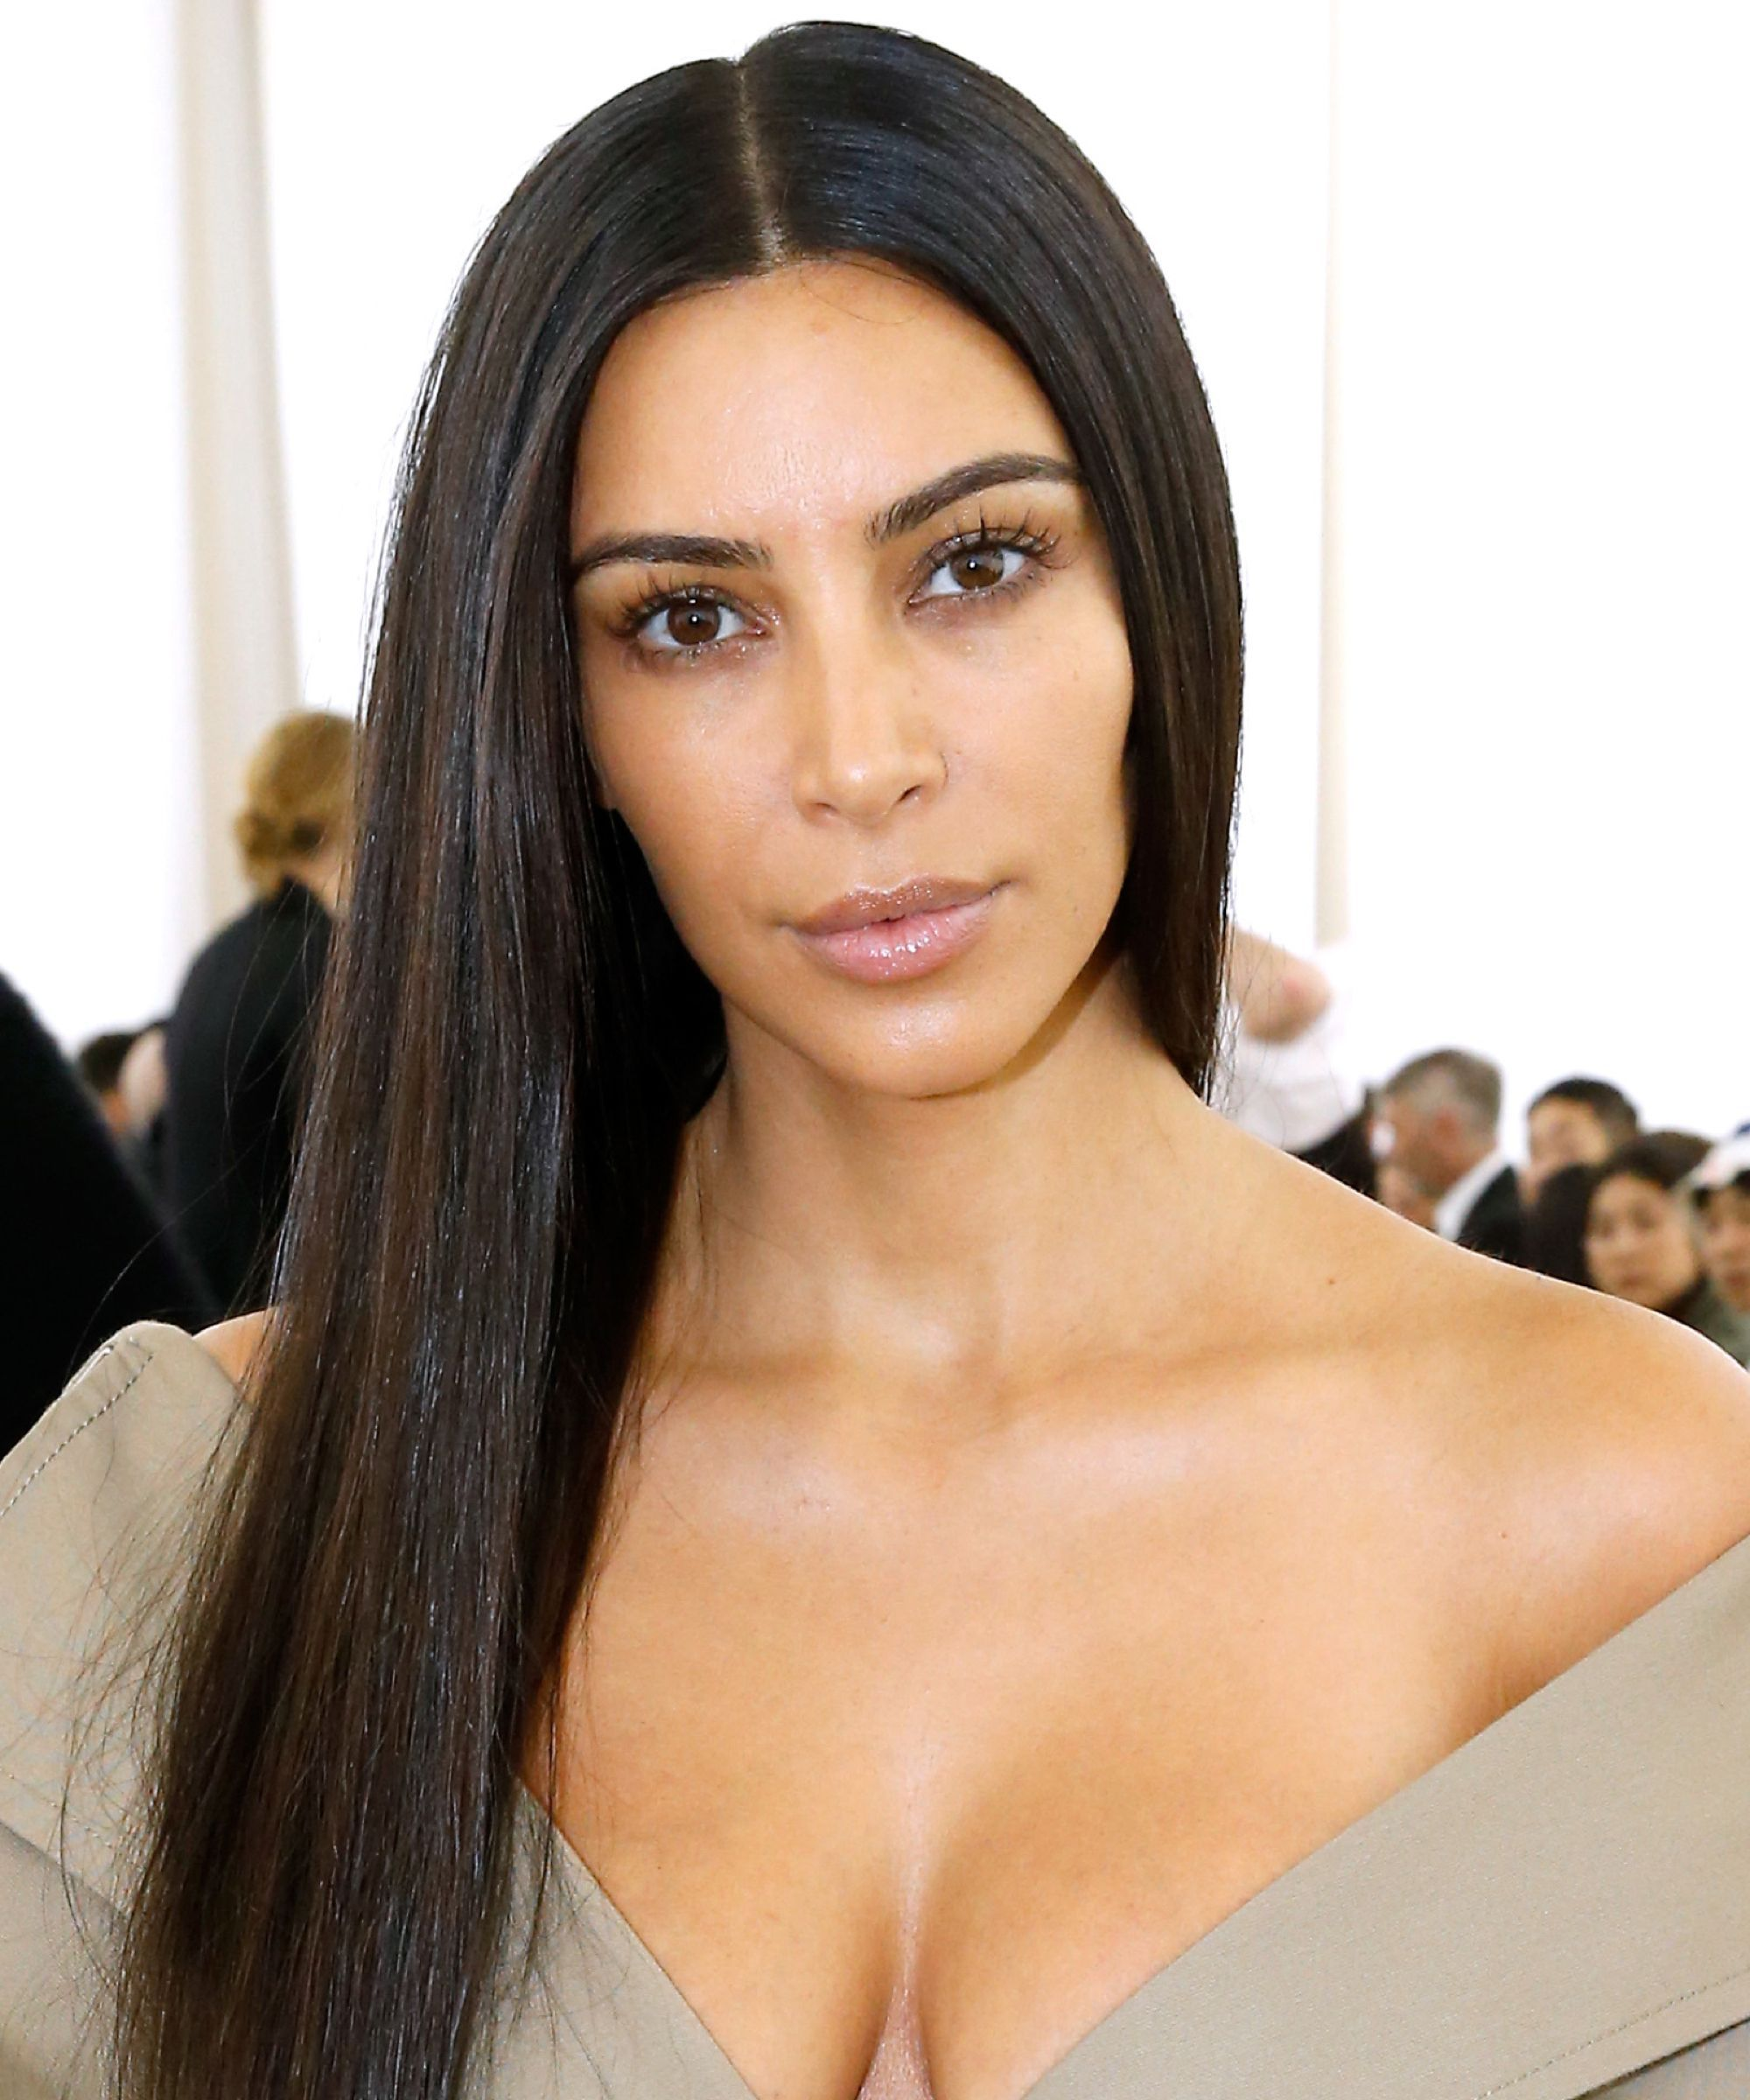 Kim Kardashian Goes Makeup Free for the Cover of Vogue